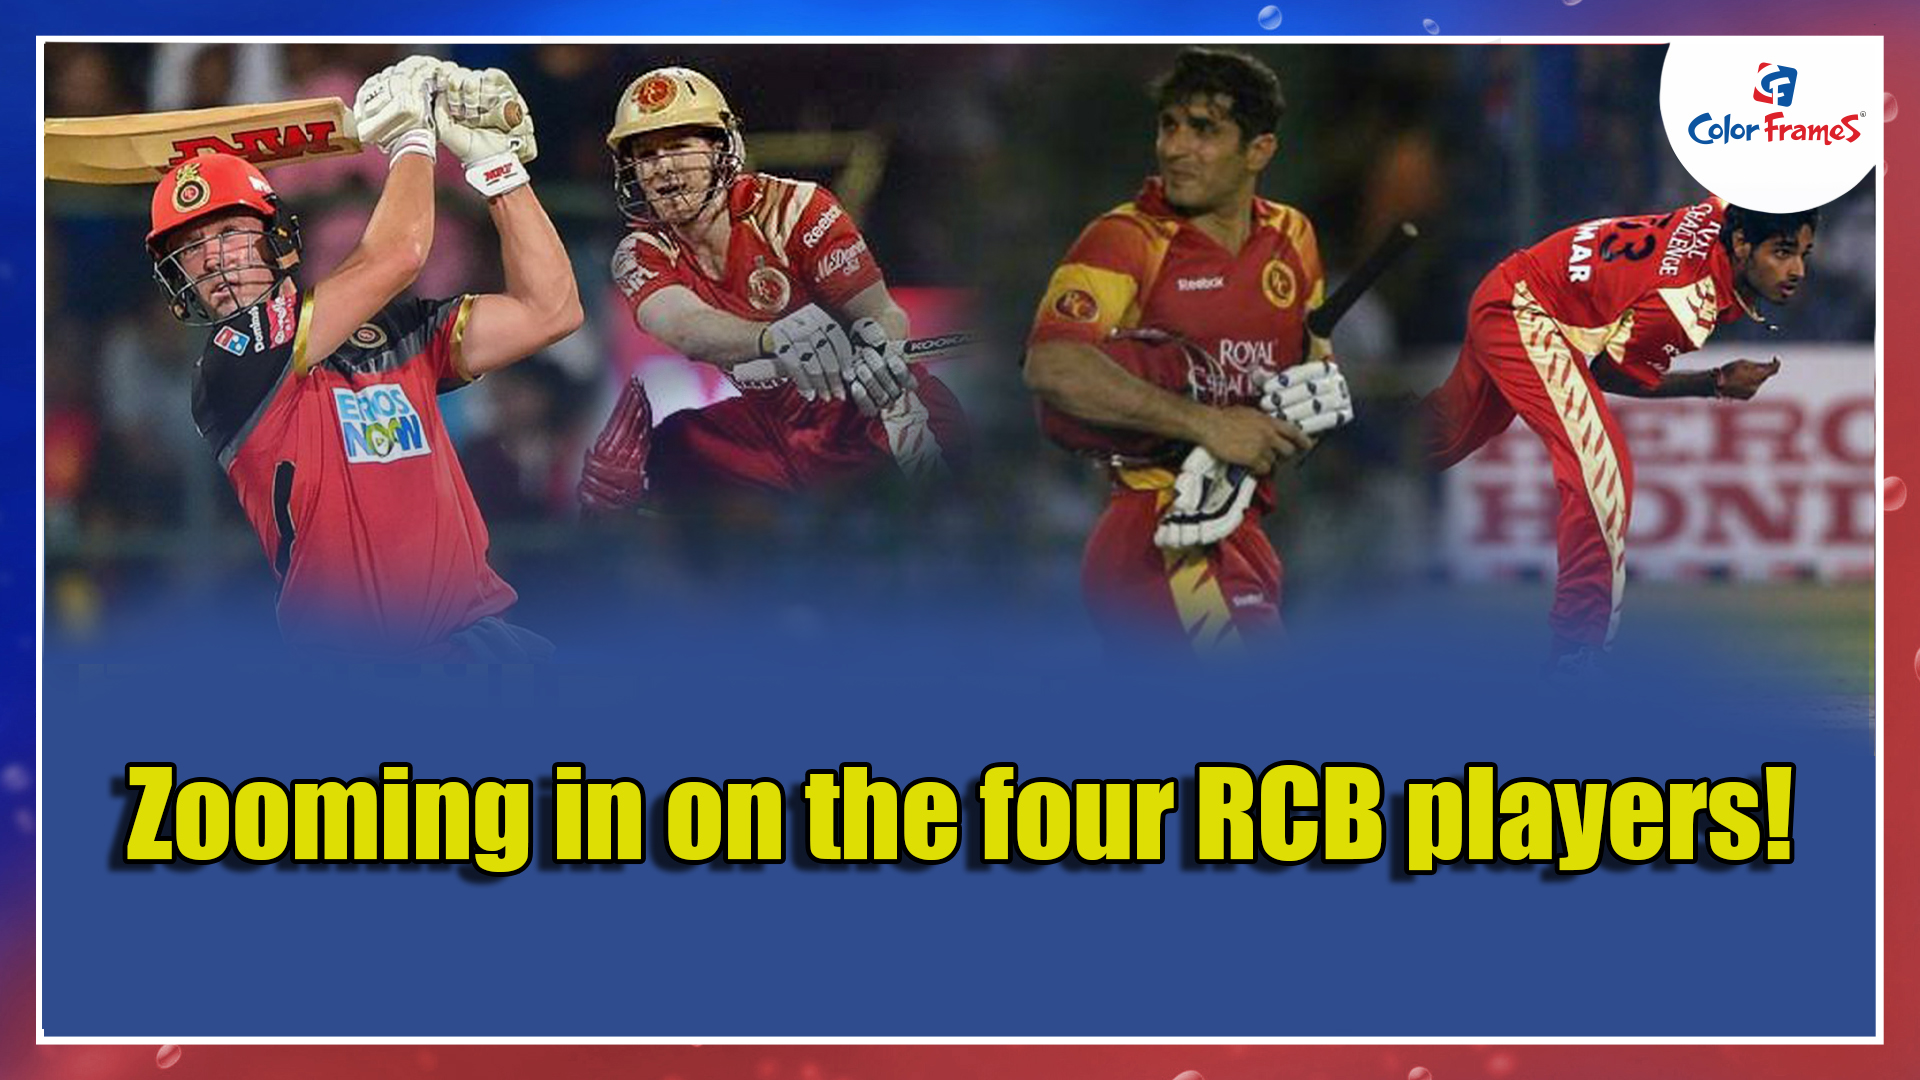 Zooming in on the four RCB players!